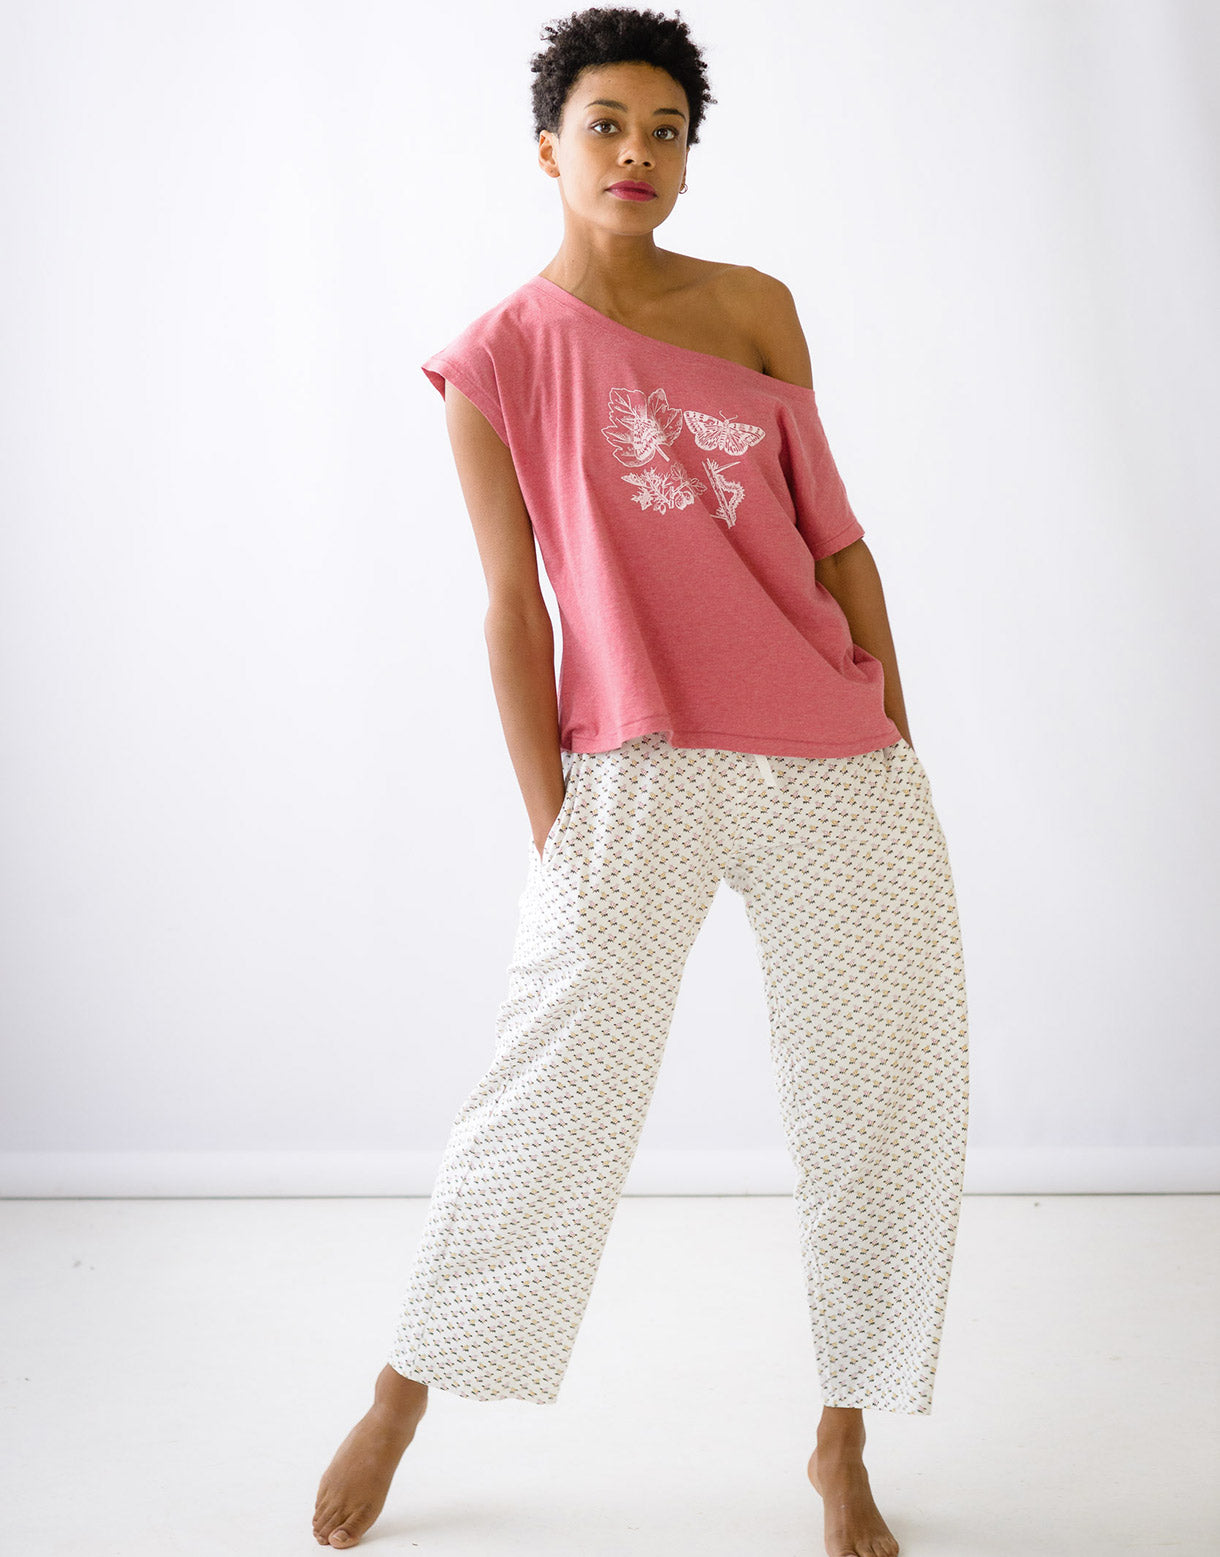 Frankie pant in Cosmos *organic cotton